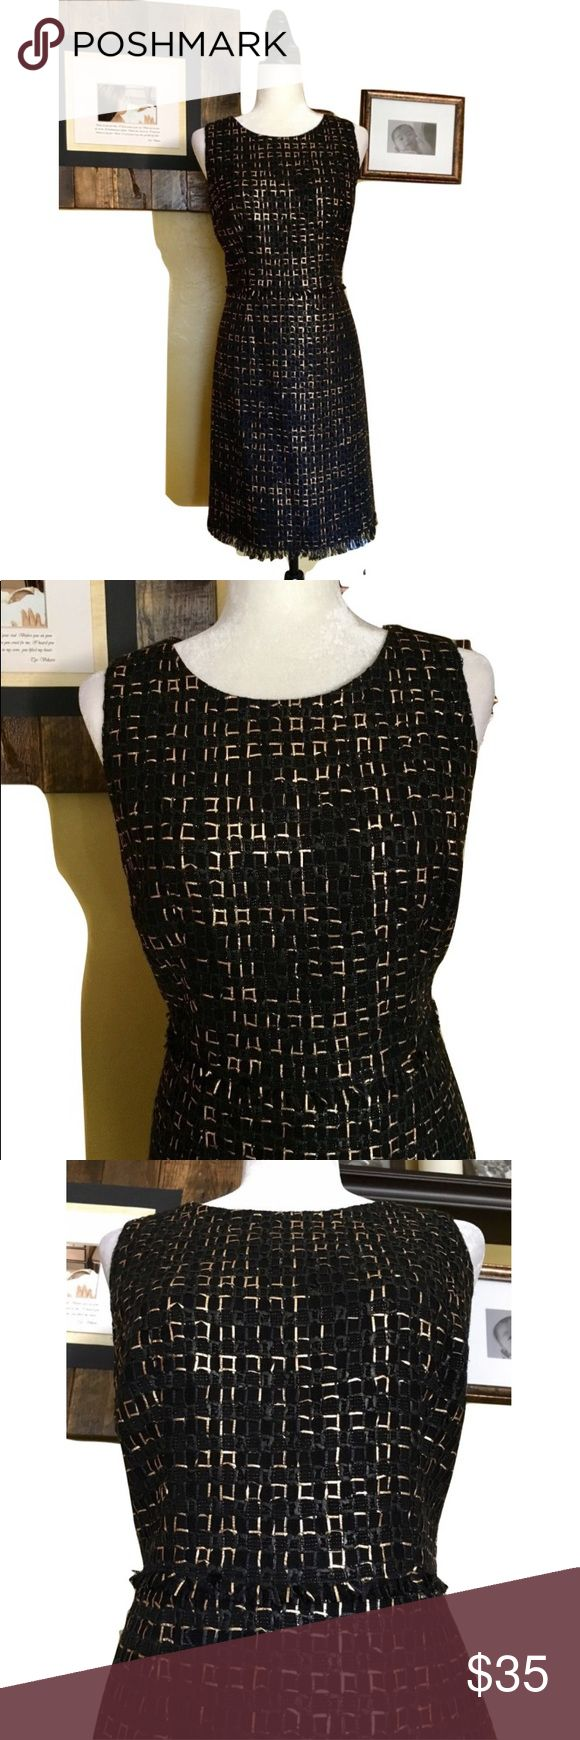 Per Se Sheath Dress Size 10 Brand: Per Se Size: 10 Approximate length is 38 inches Black and gold textured sheath dress that is fully lined. Hem: raw edge fray detailing. Very Good condition Great for work, office or an evening out.  Questions? Please ask before purchasing. Per Se Dresses